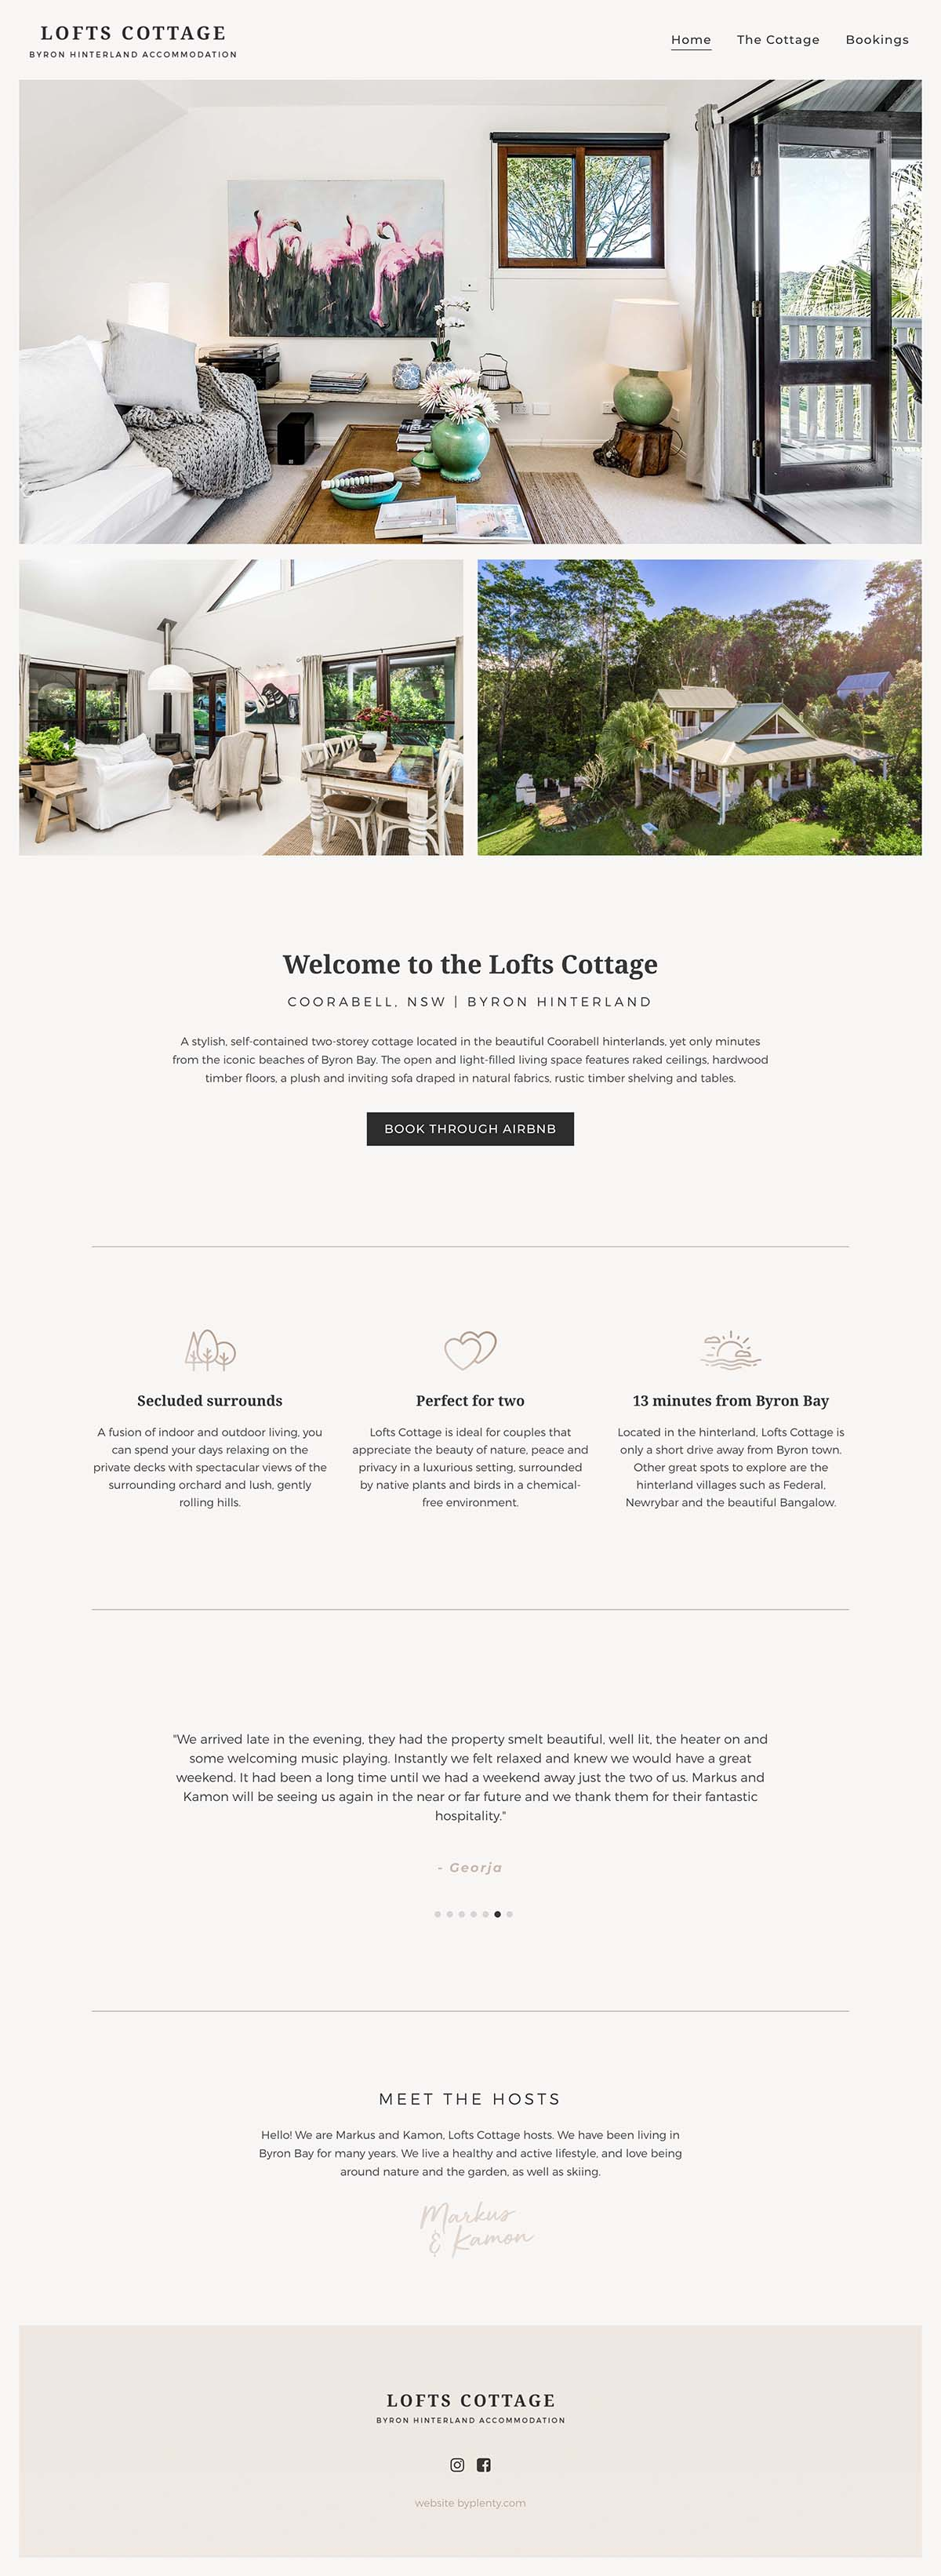 Lofts Cottage Website Design